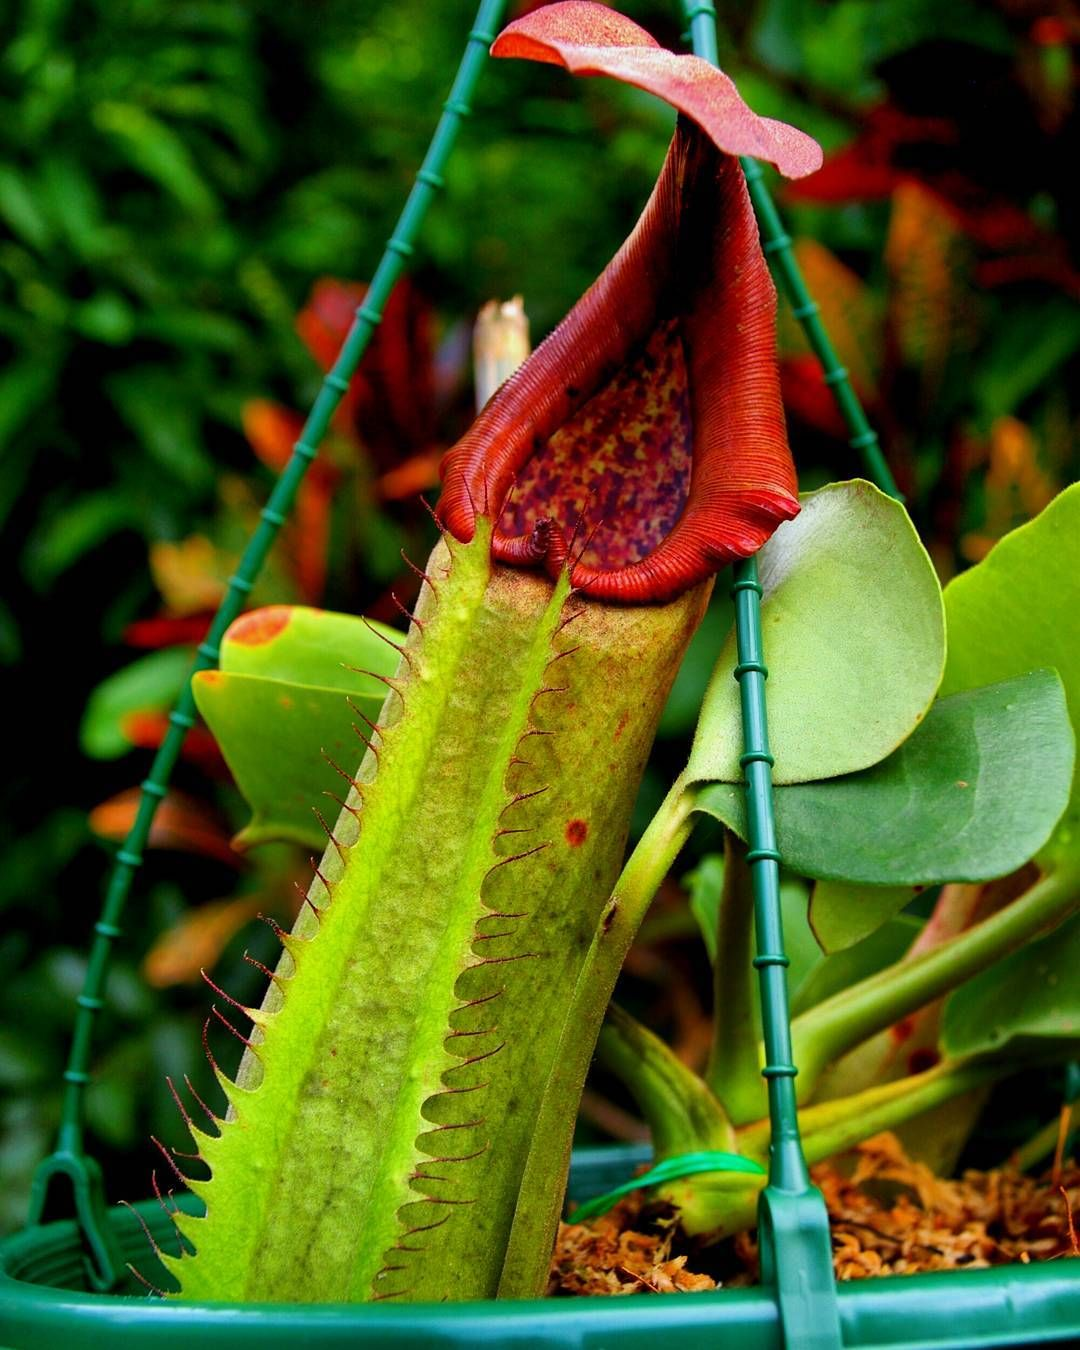 My Organic fleshlight  #nepenthes truncata 'a'  If it's going to be anything like my last truncata it will be catching birds in no time.  #carnivorousplant #carnivorousplants #pitcherplant #tropicalpitcherplant by dickey_me